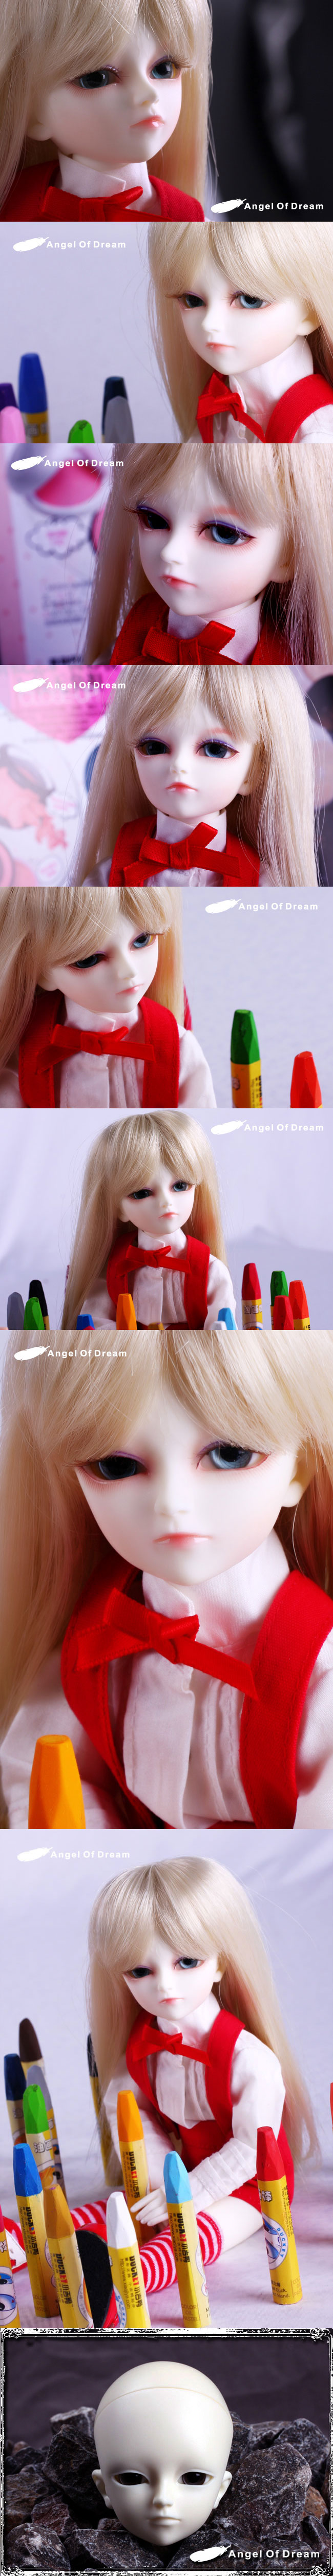 BJD Nini 27cm Girl Ball-jointed doll